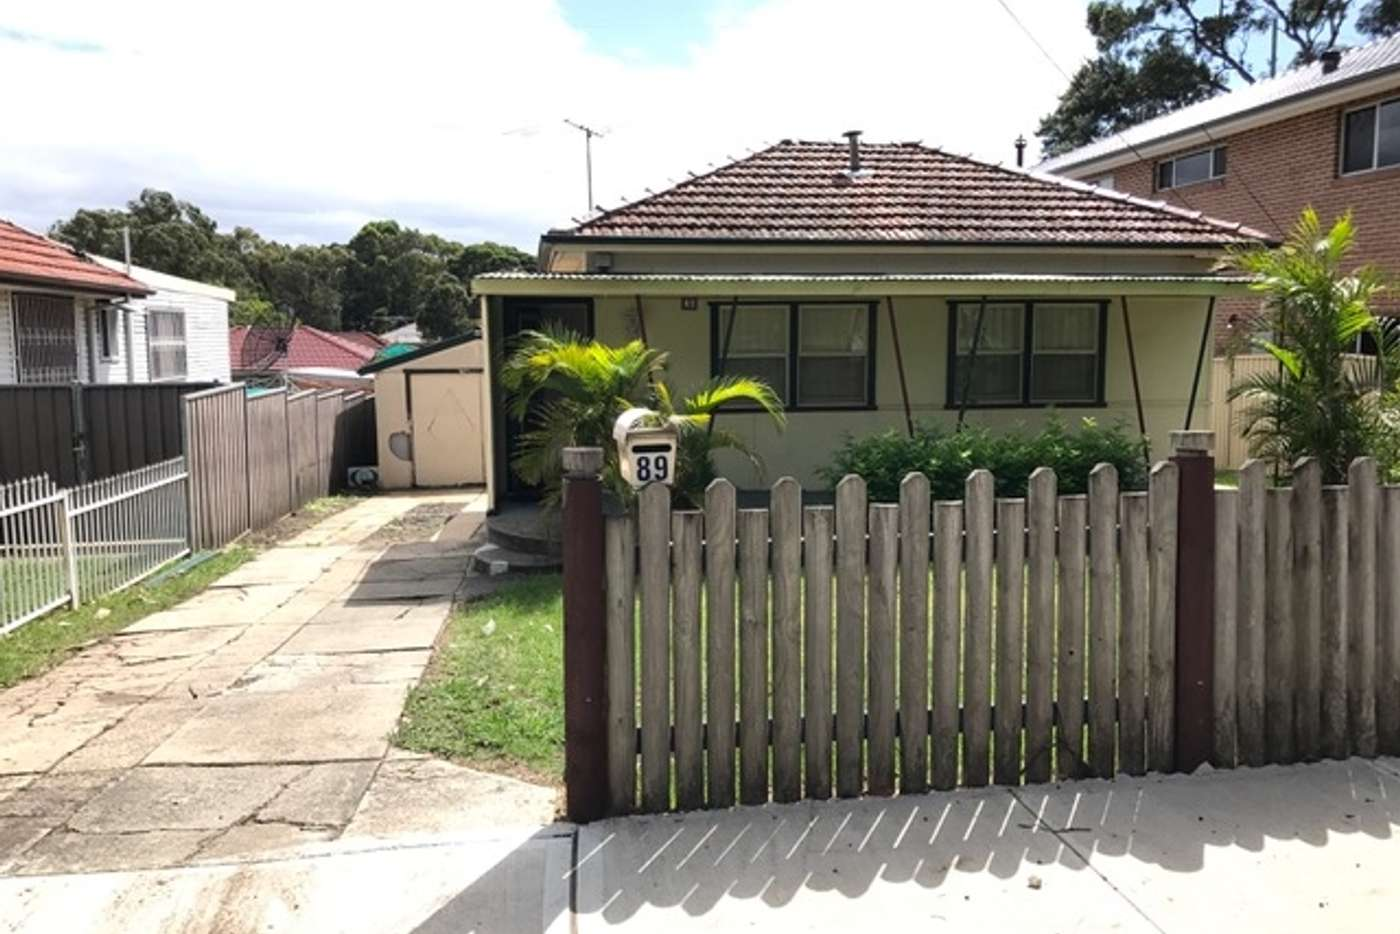 Main view of Homely house listing, 89 Juno Parade, Greenacre NSW 2190